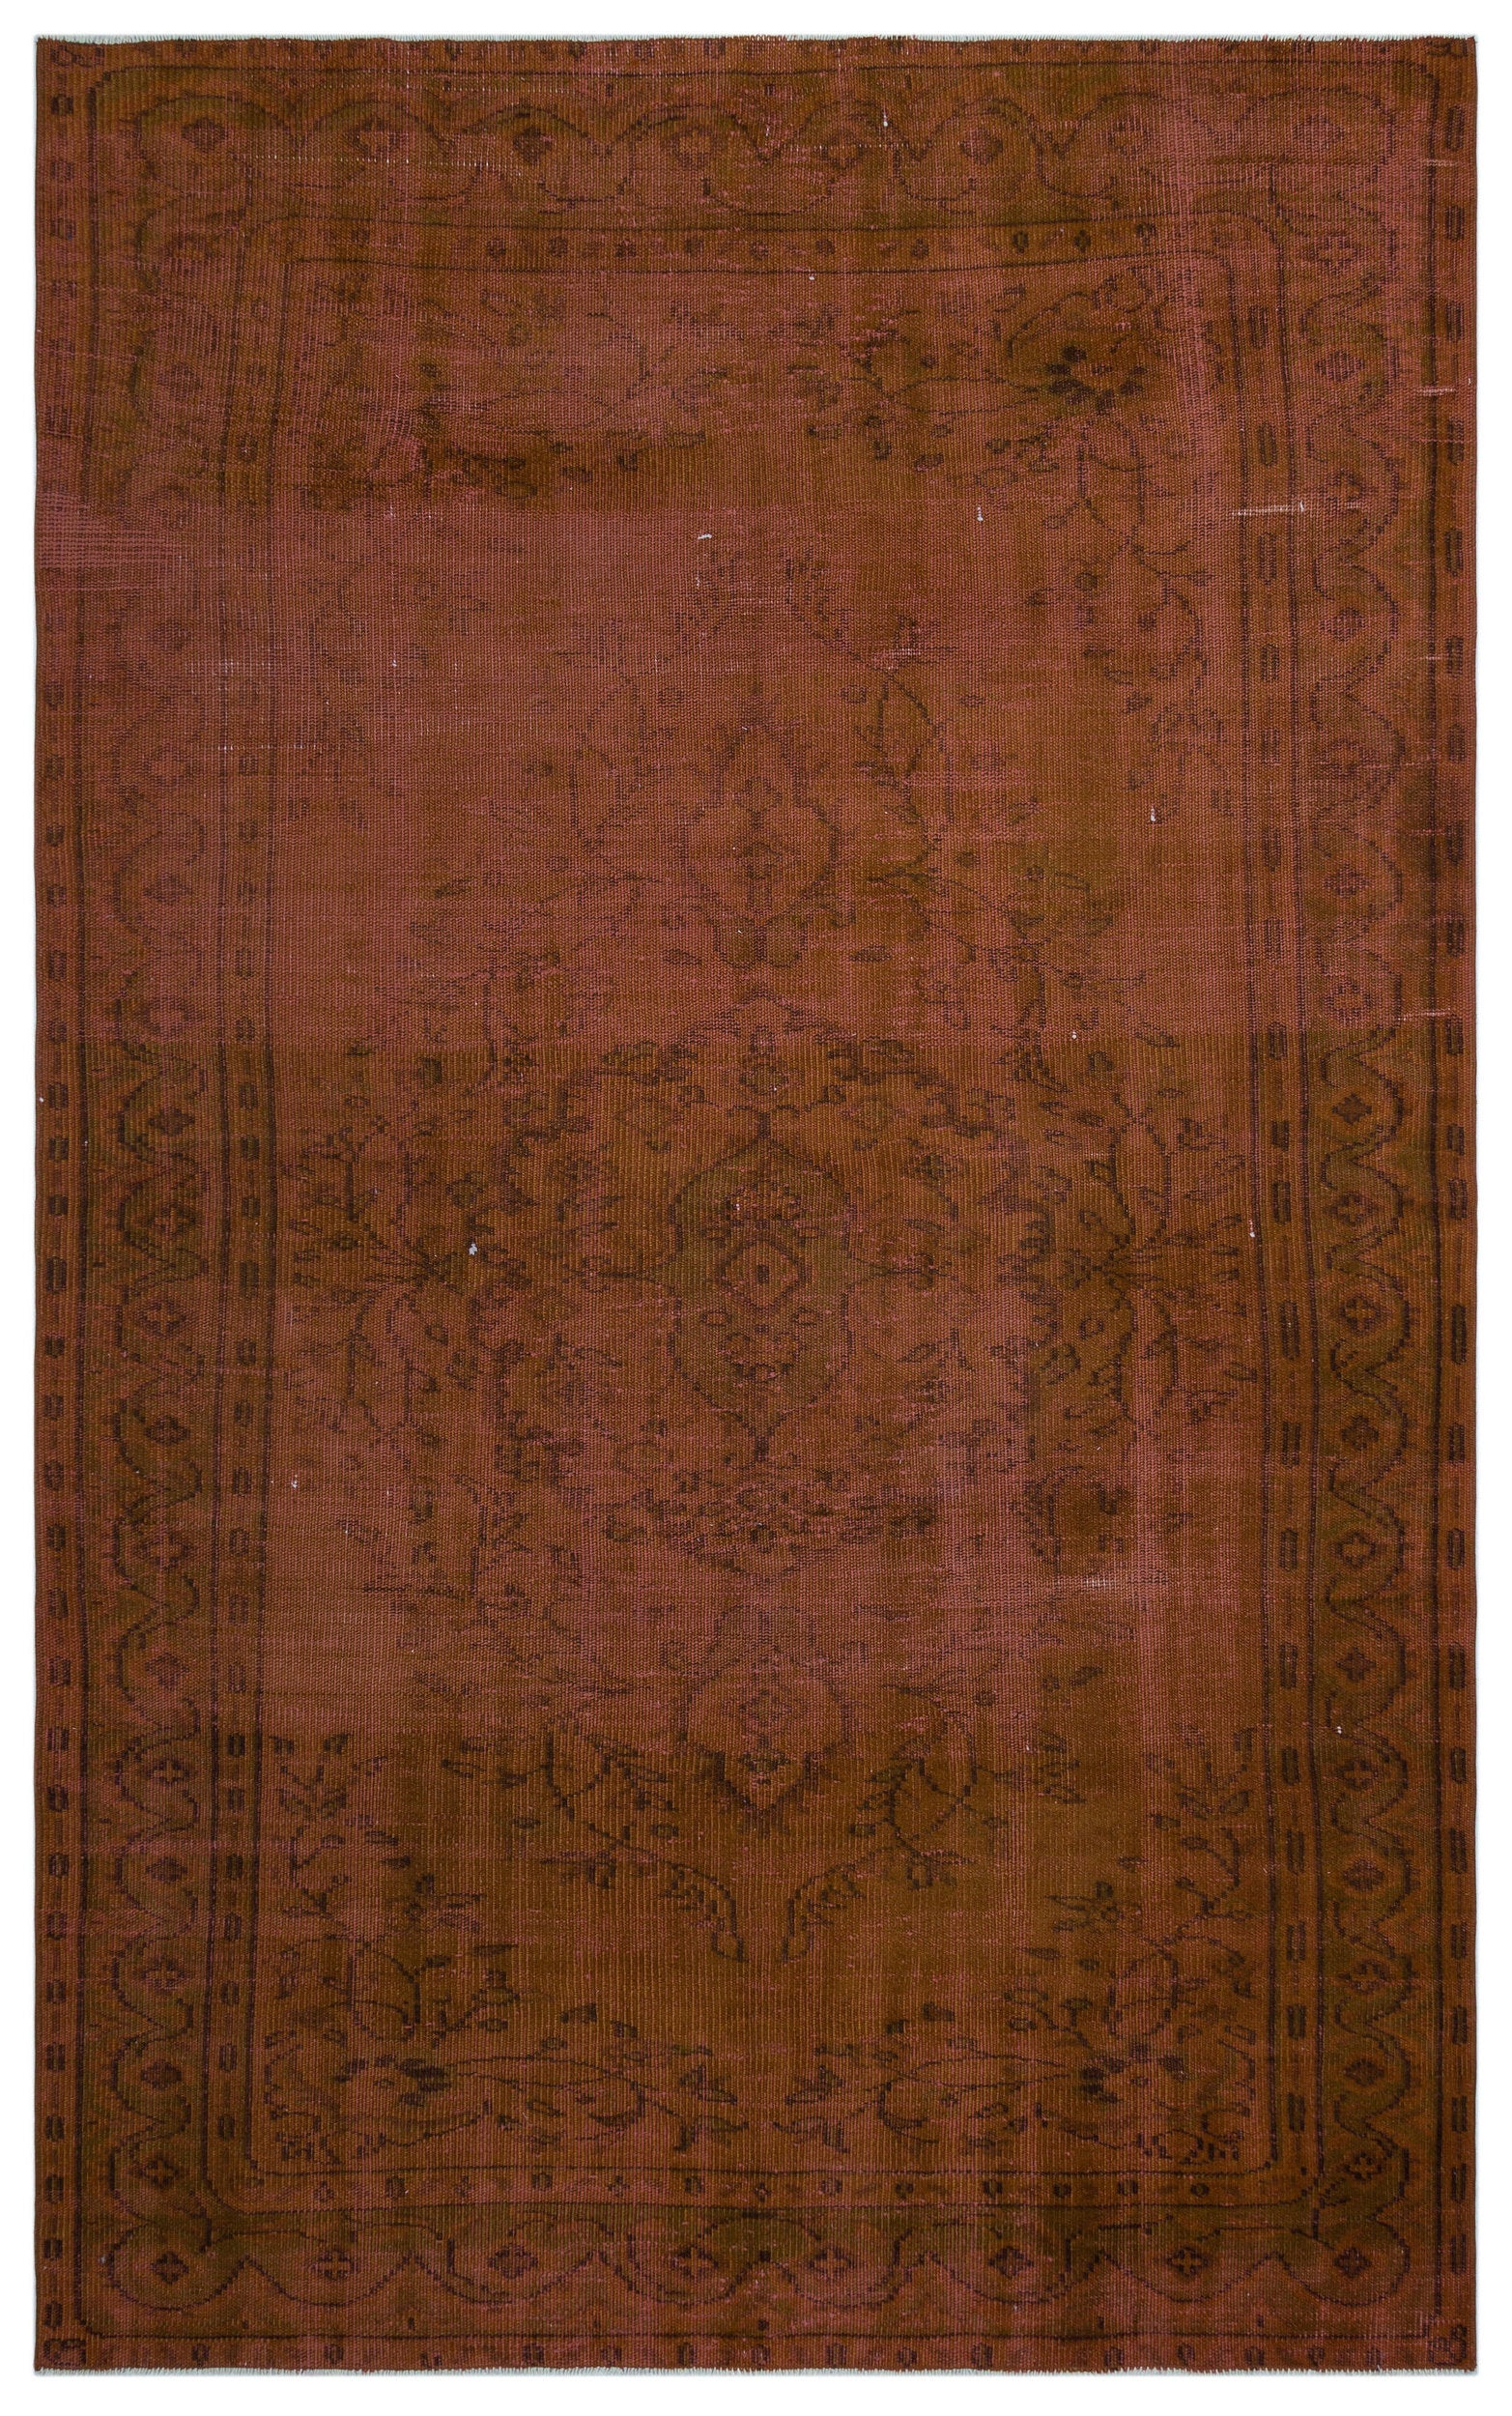 Brown Over Dyed Vintage Rug 5'10'' x 9'7'' ft 178 x 291 cm